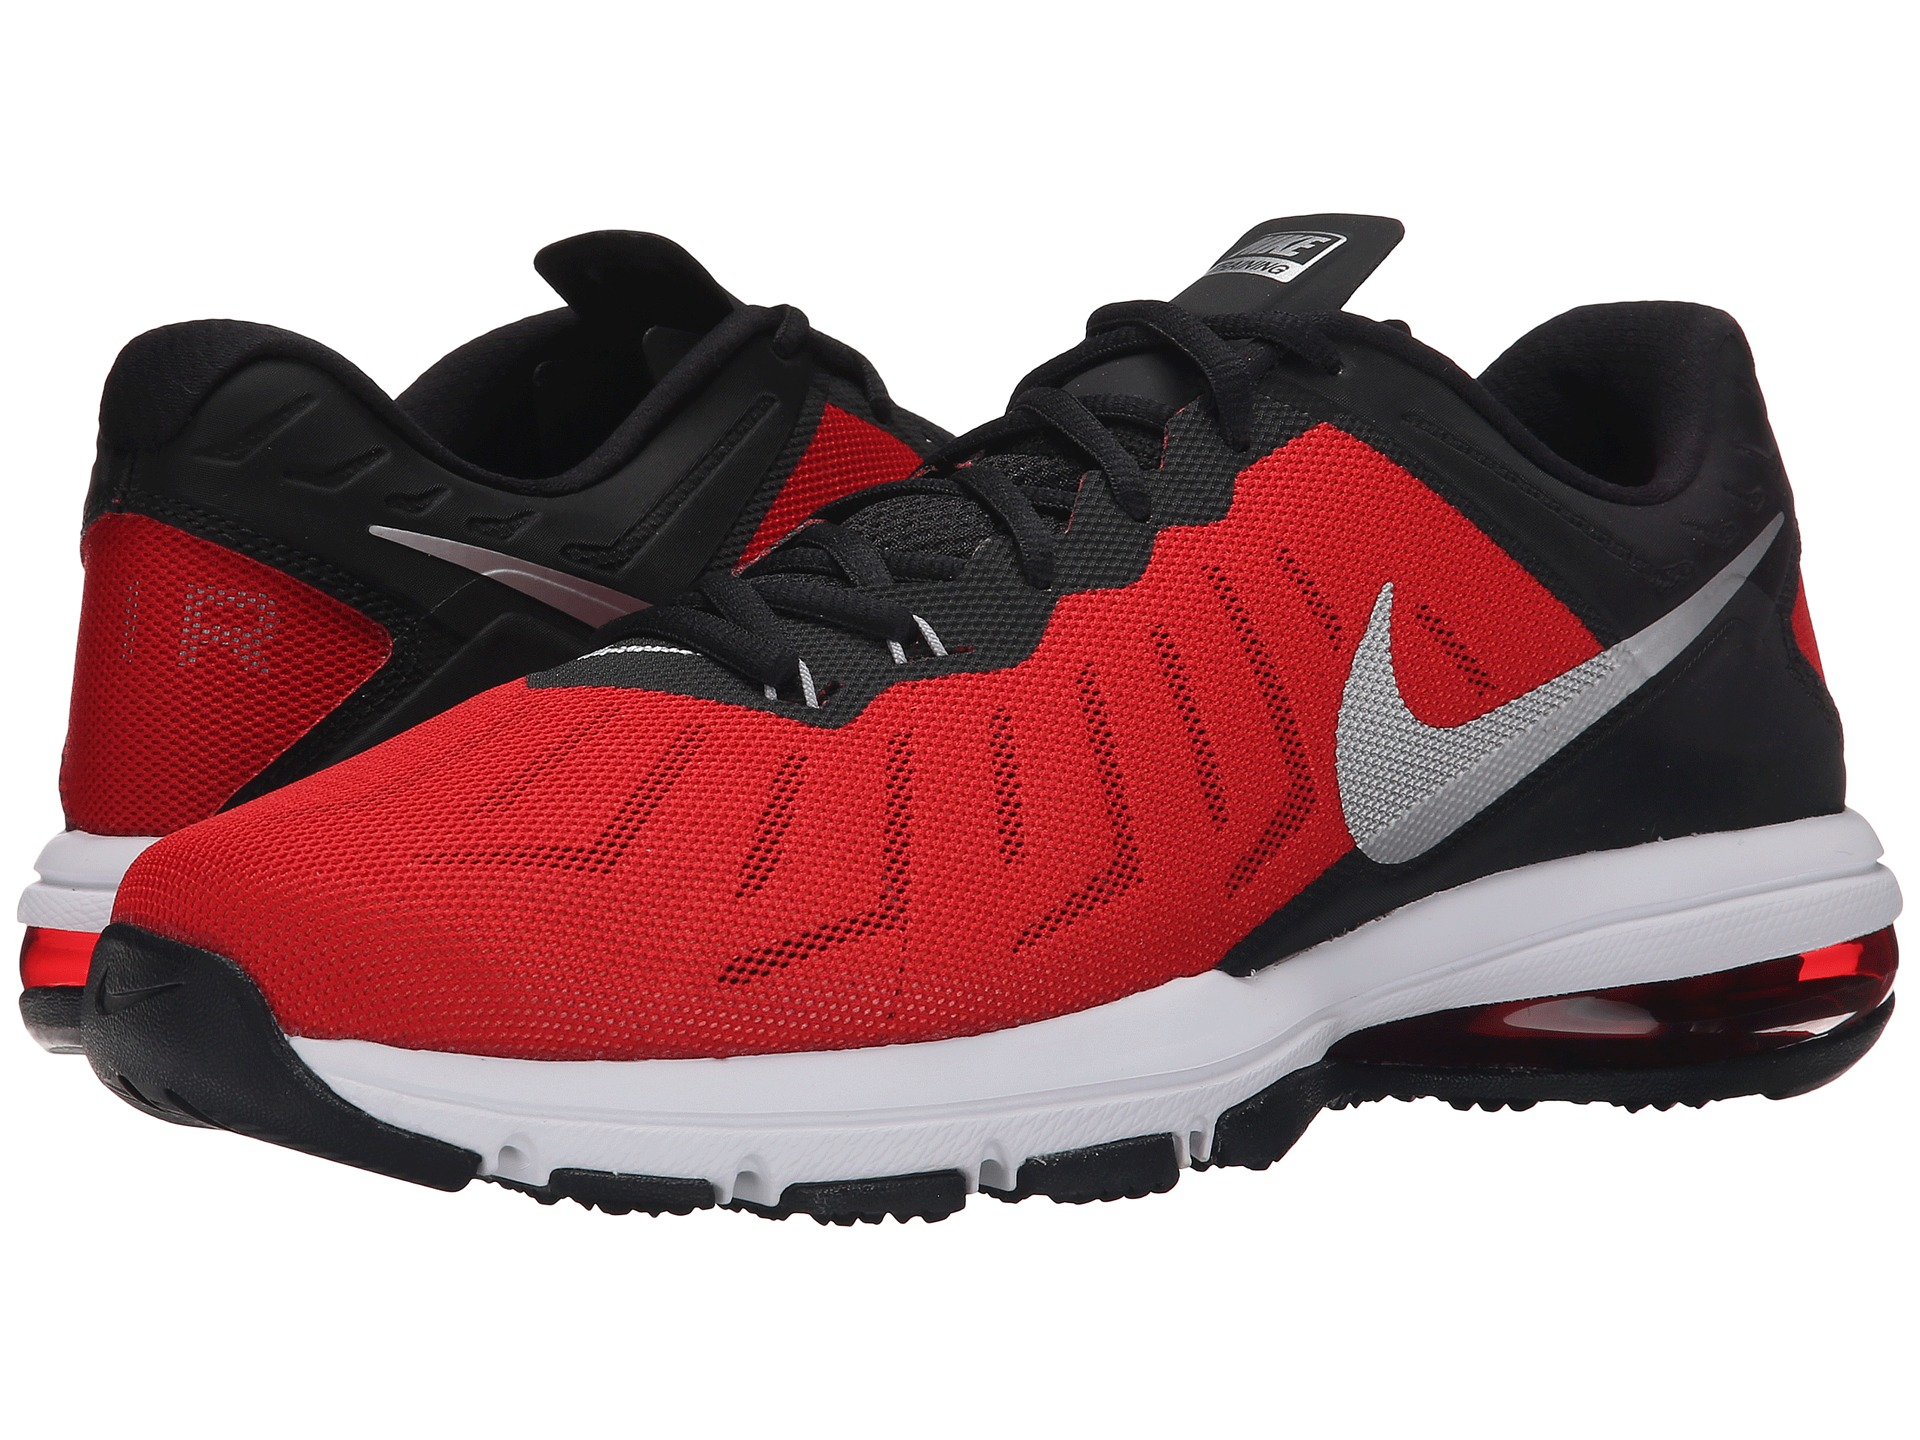 ... 1.5 Grey Black Men Training Shoes Trainers 869633-011 Nike Air Max Full  Ride Tr in Red for Men Lyst ... d9013836a